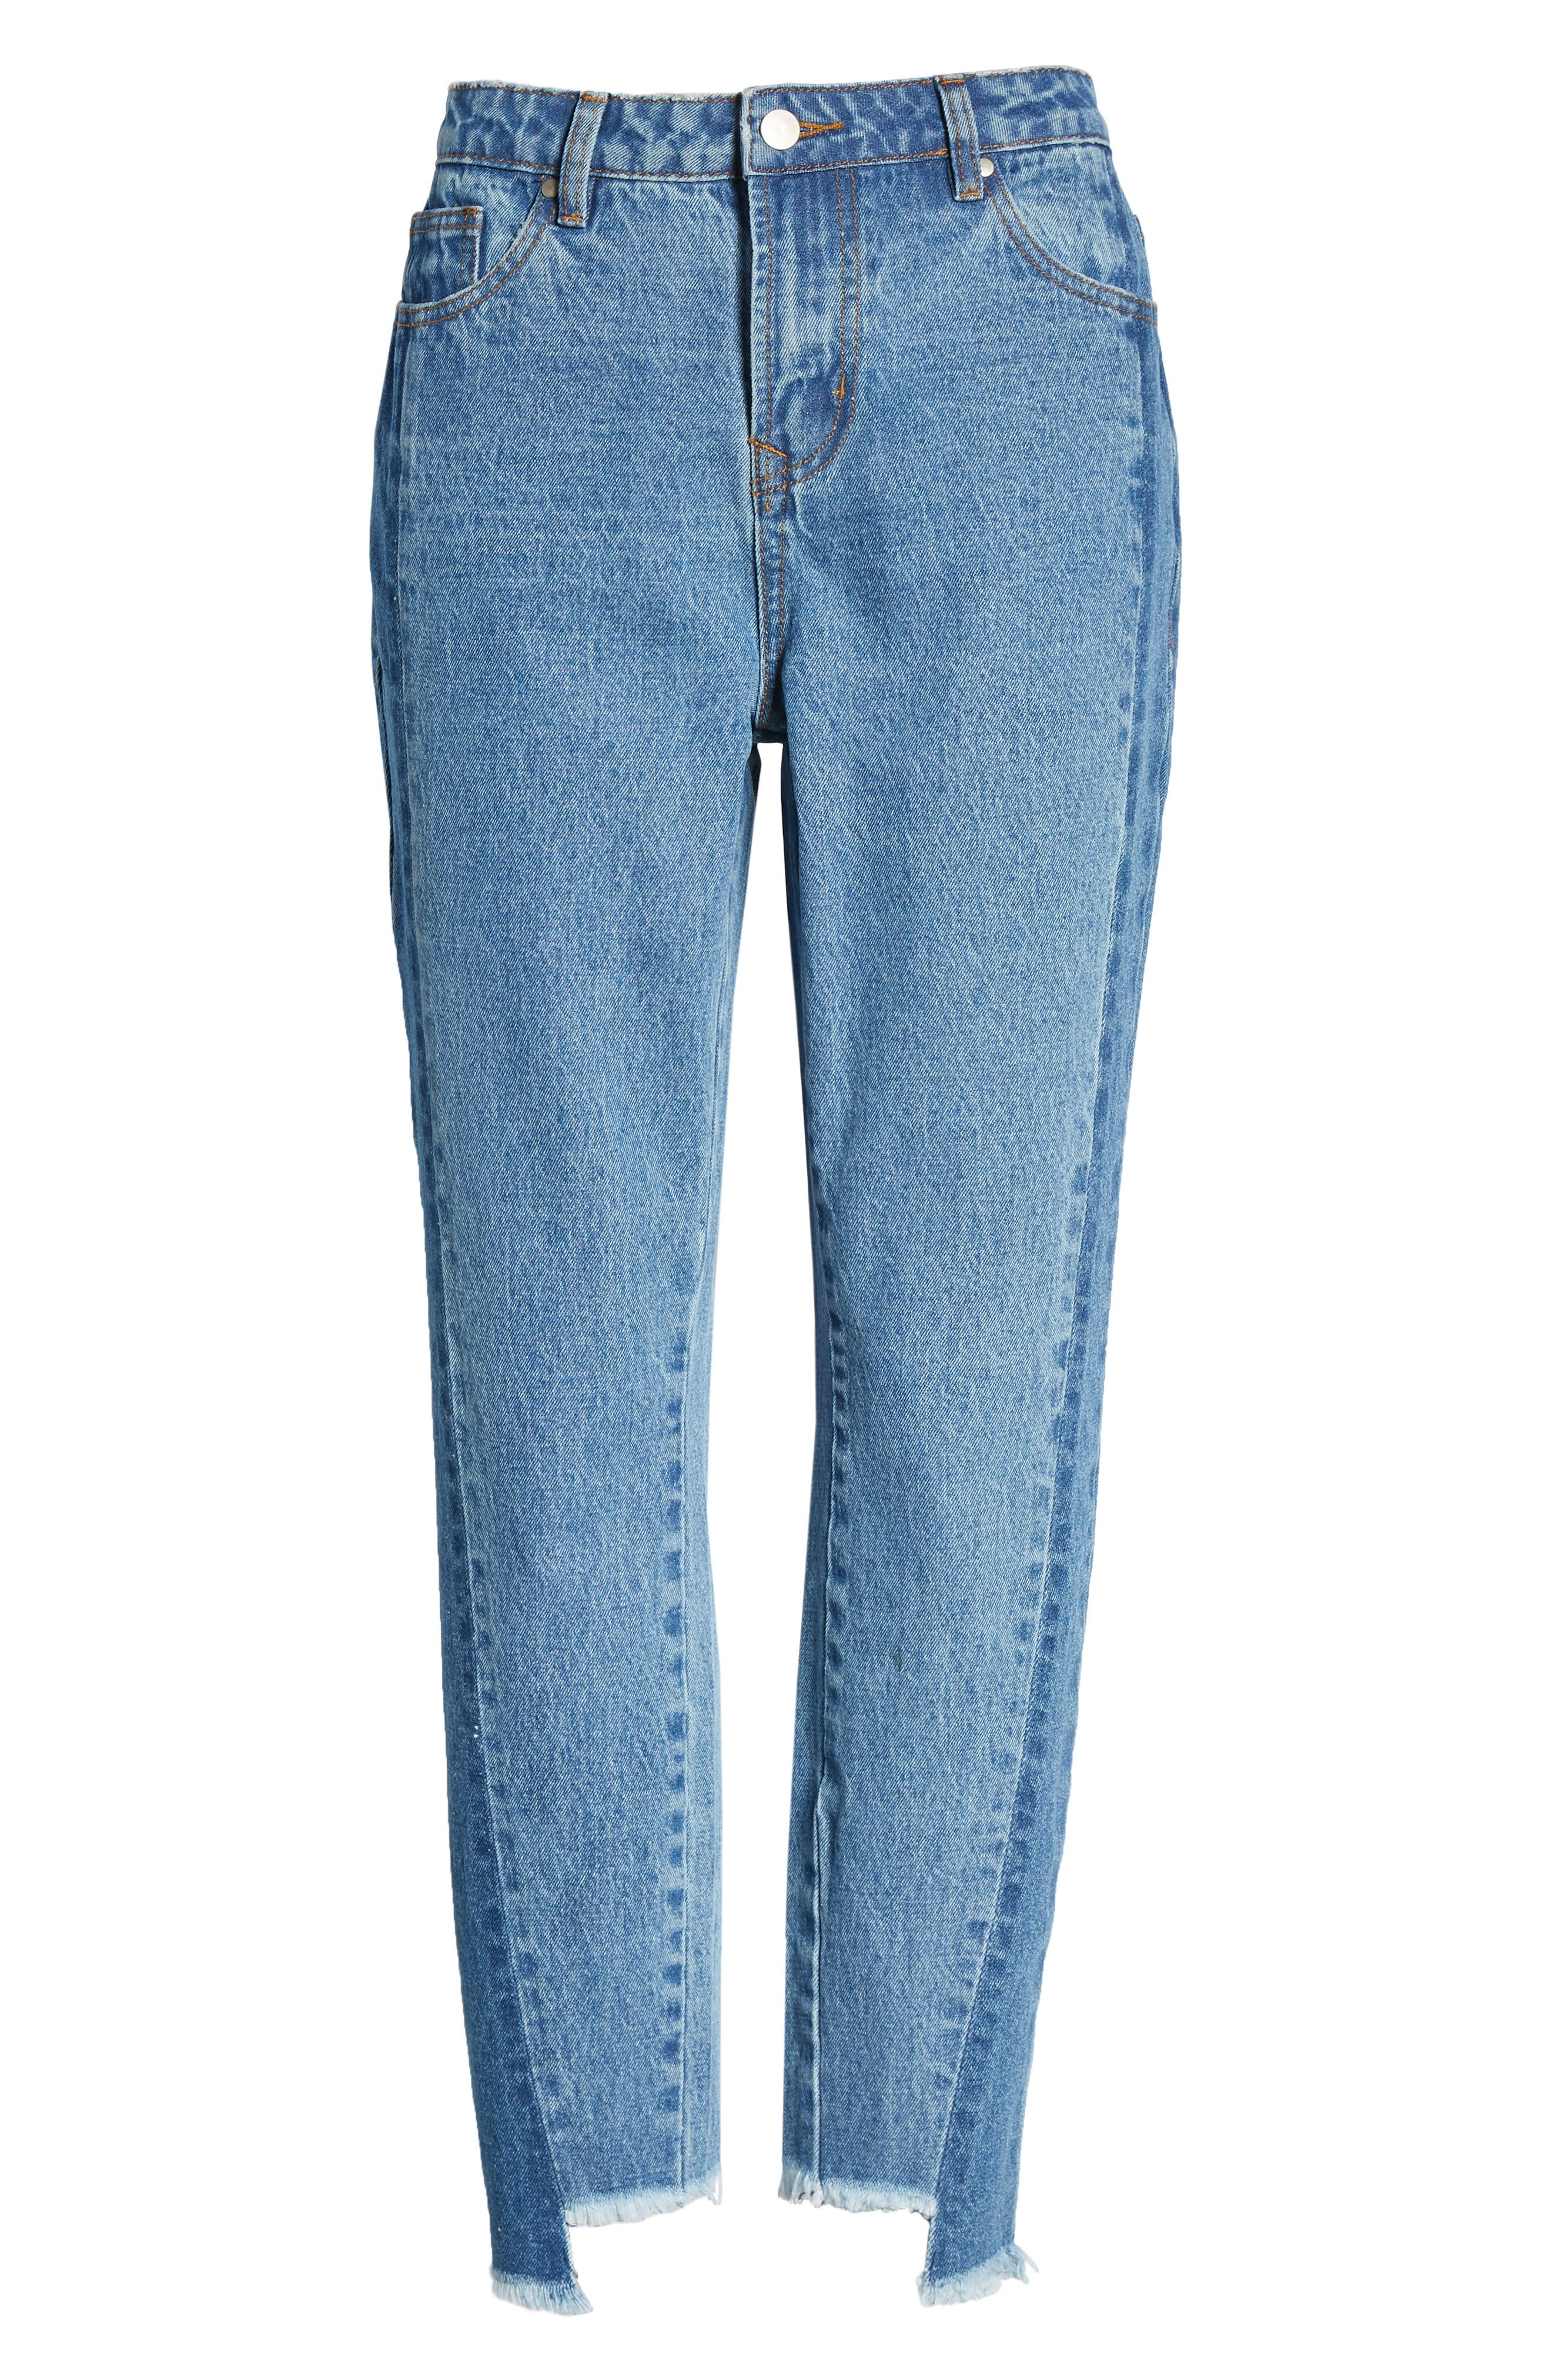 Step Hem Two-Tone Rigid Jeans,                             Alternate thumbnail 6, color,                             Light Med Wash